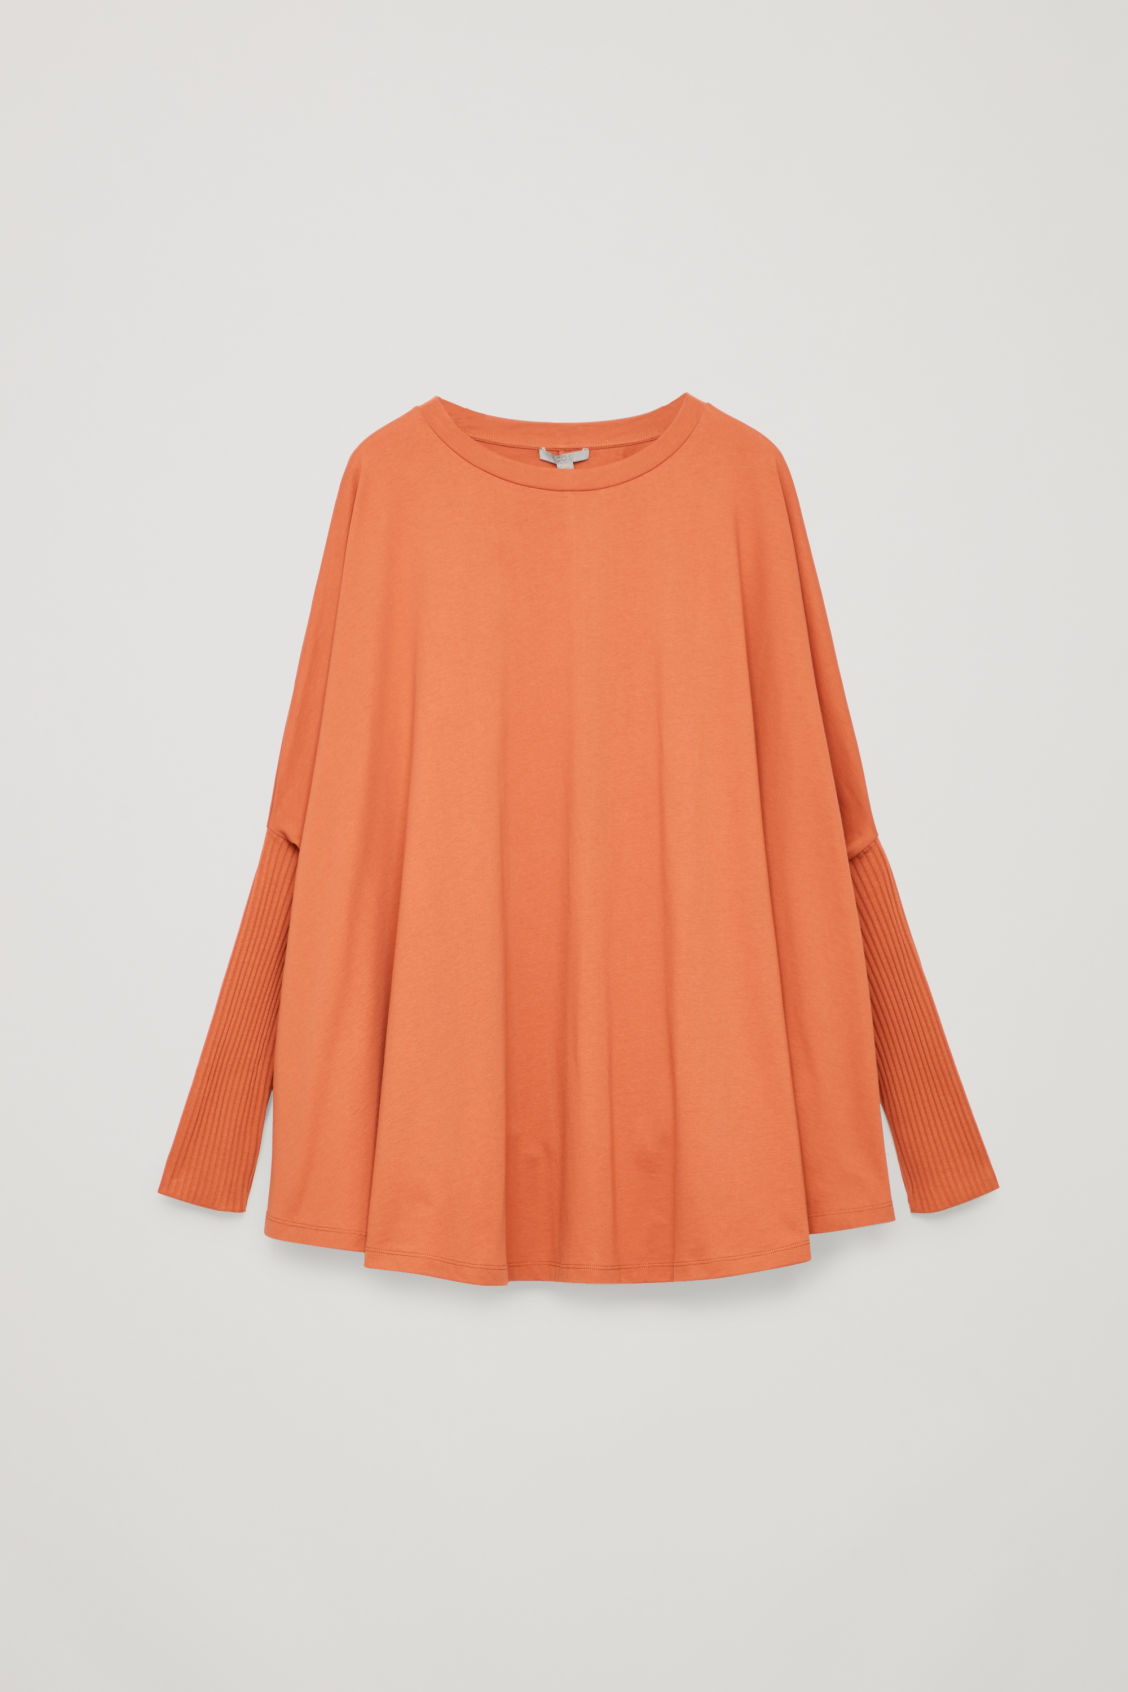 CIRCLE-CUT TOP WITH RIB SLEEVES